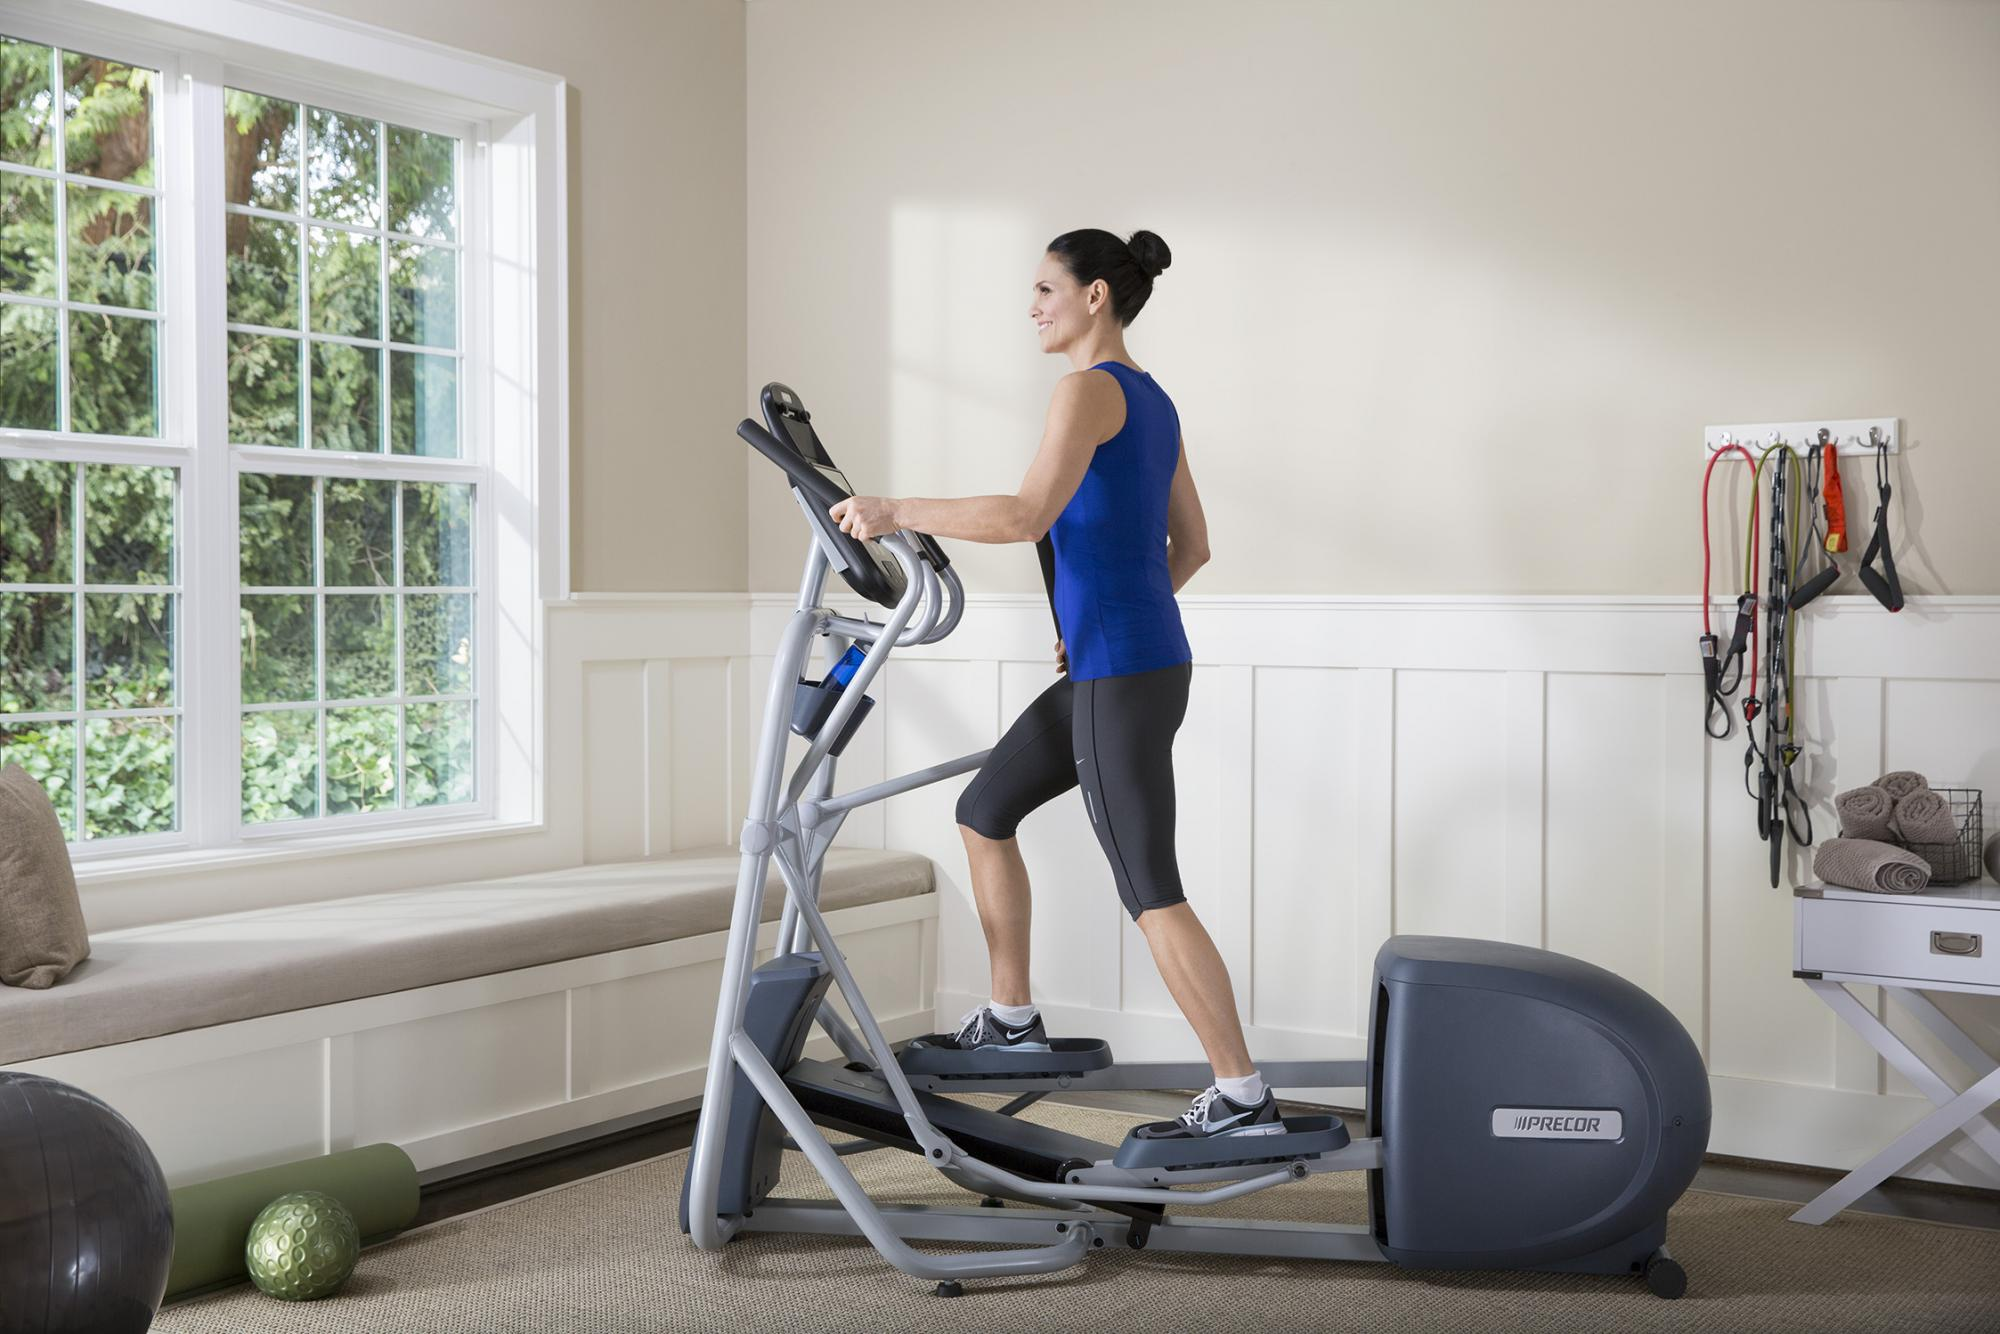 Work In Some Workout Room Right at Home - Precor (US)